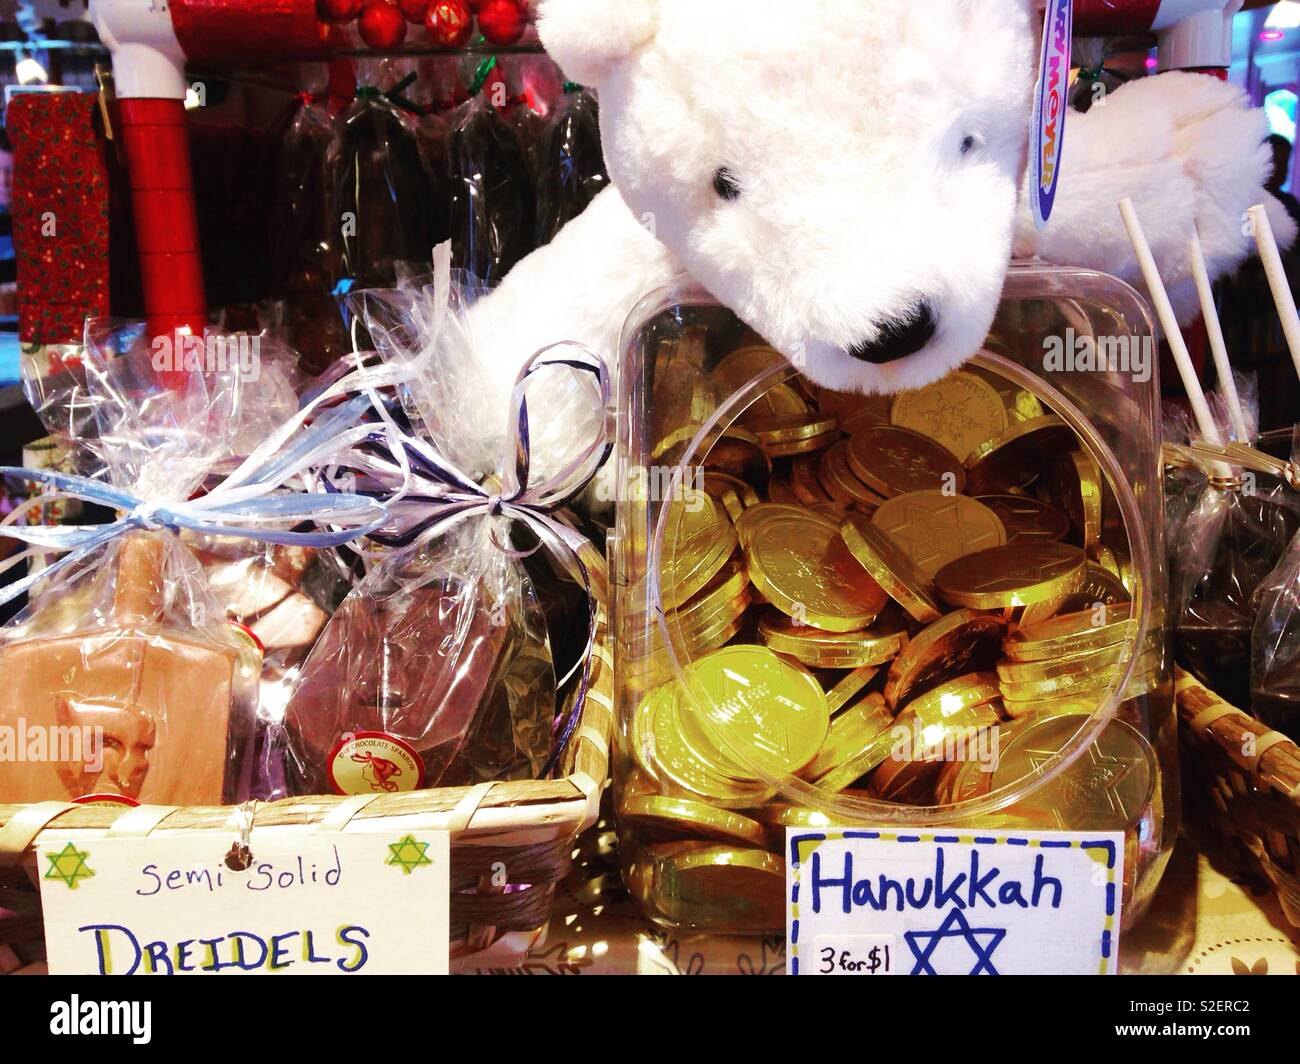 Hannukah candy - Stock Image